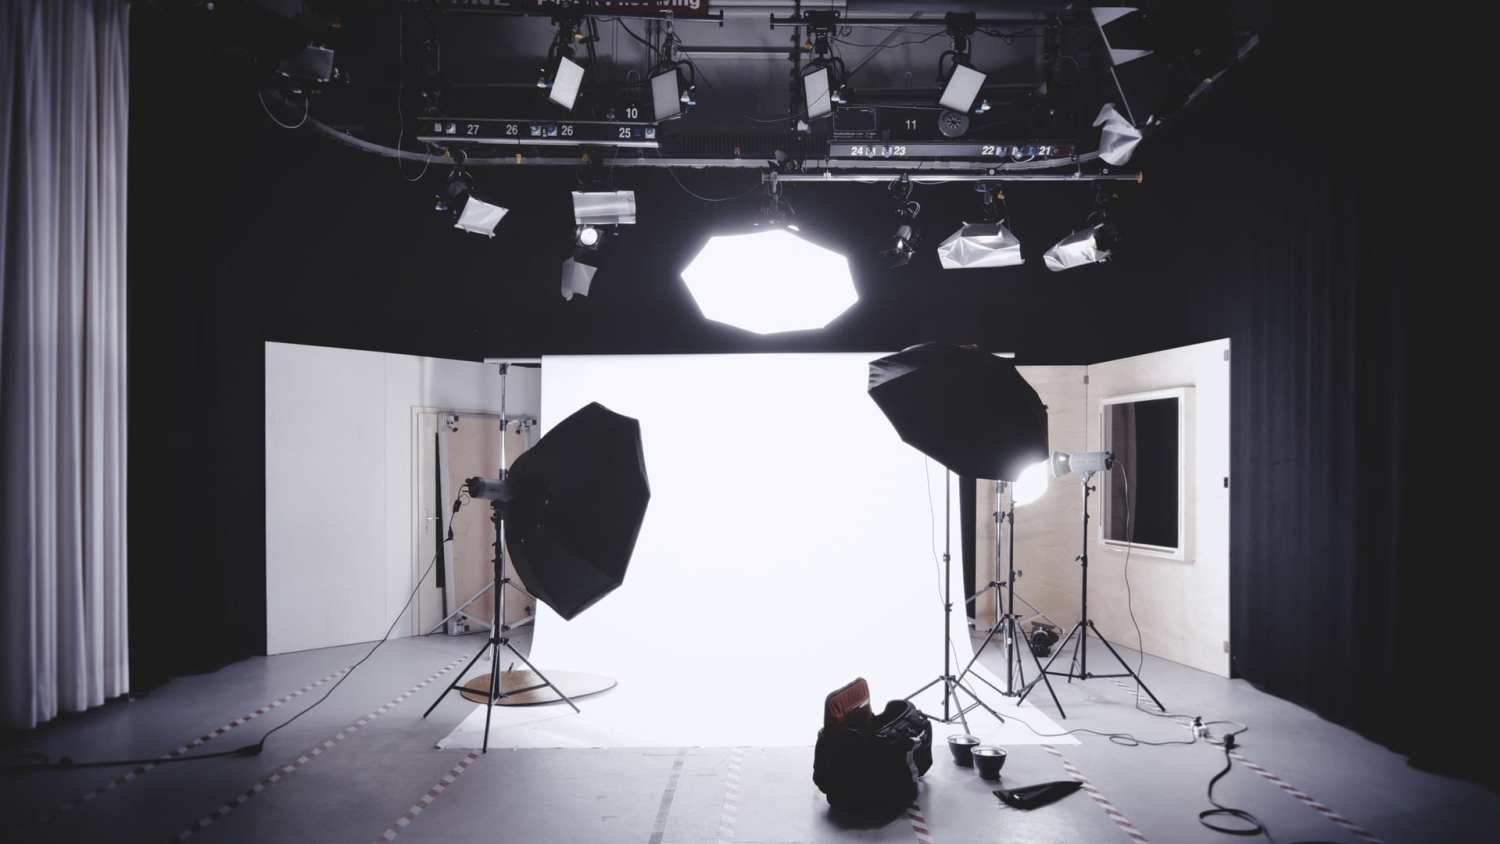 StrategyDriven Online Marketing and Website Development Article, Advice for Setting Up Your Home or Mobile Video Studio